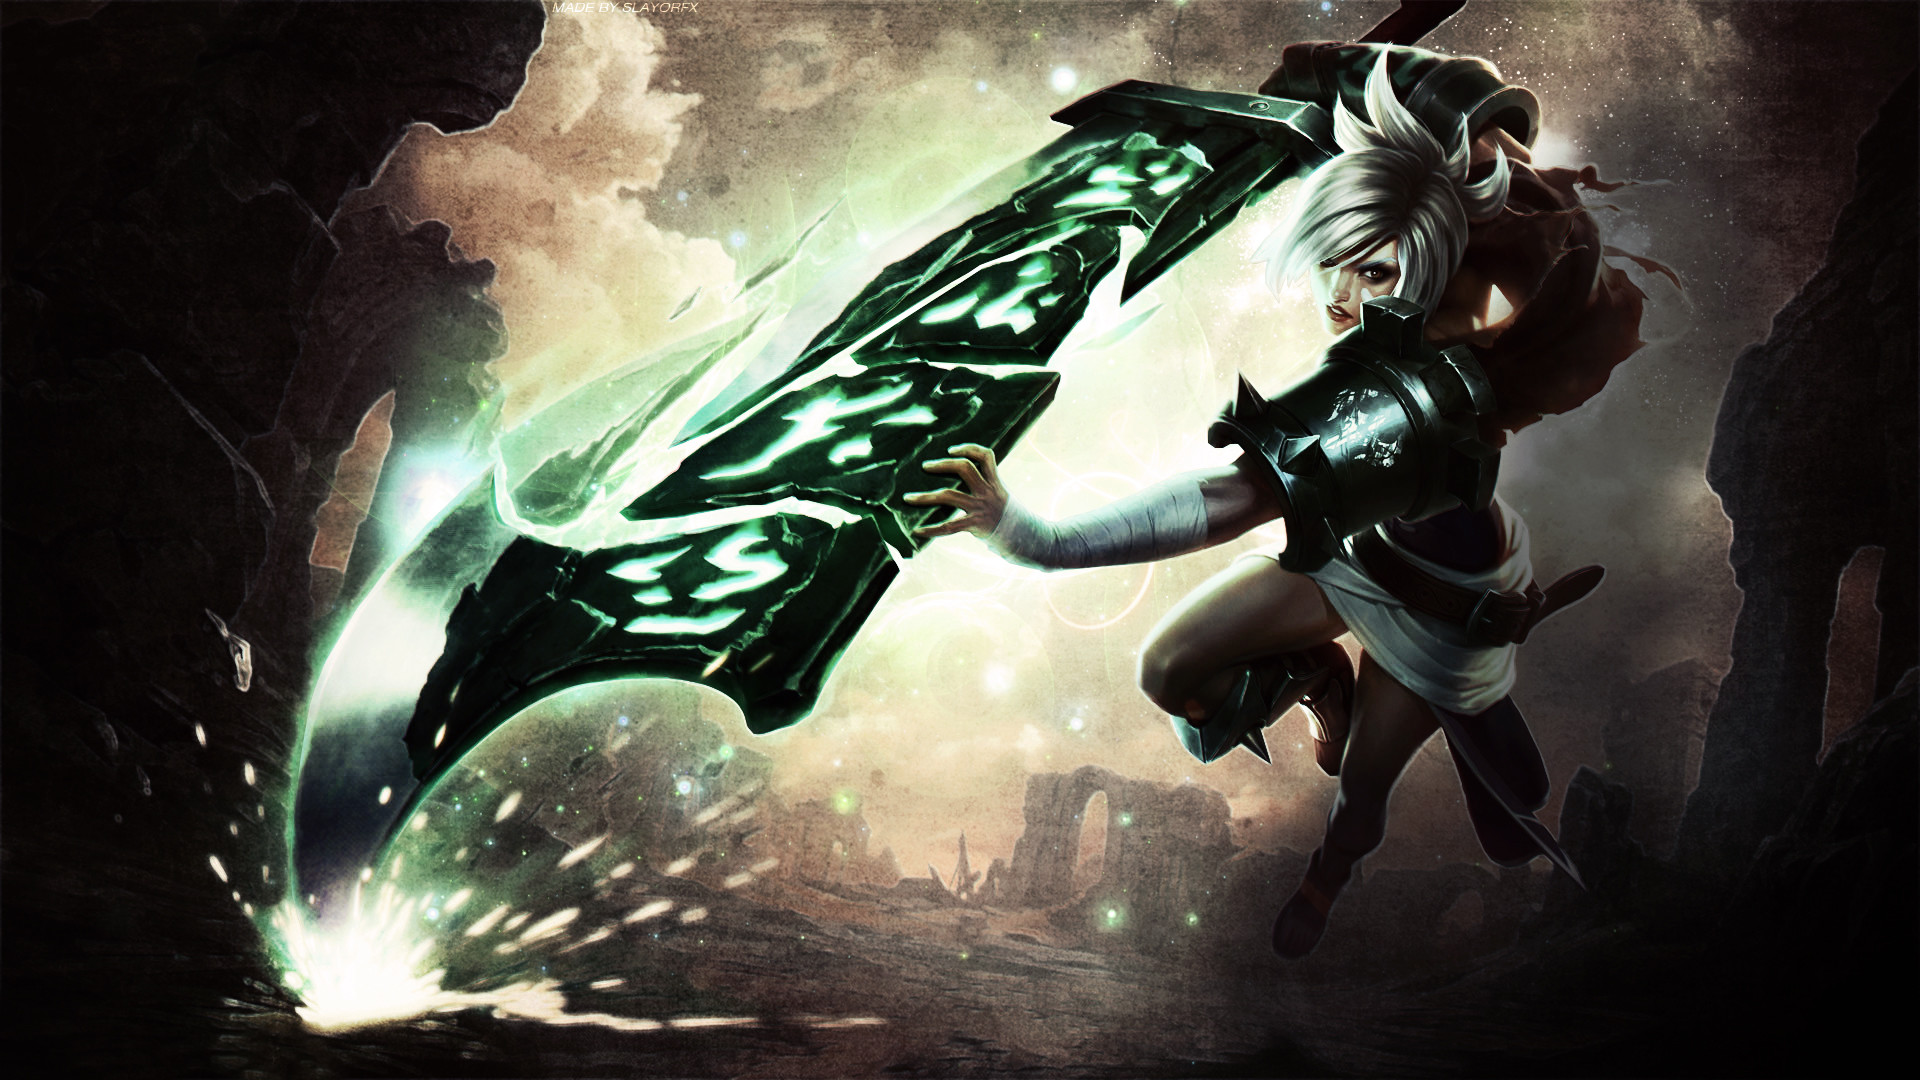 1920x1080 League Of Legends Riven Wallpaper Desktop